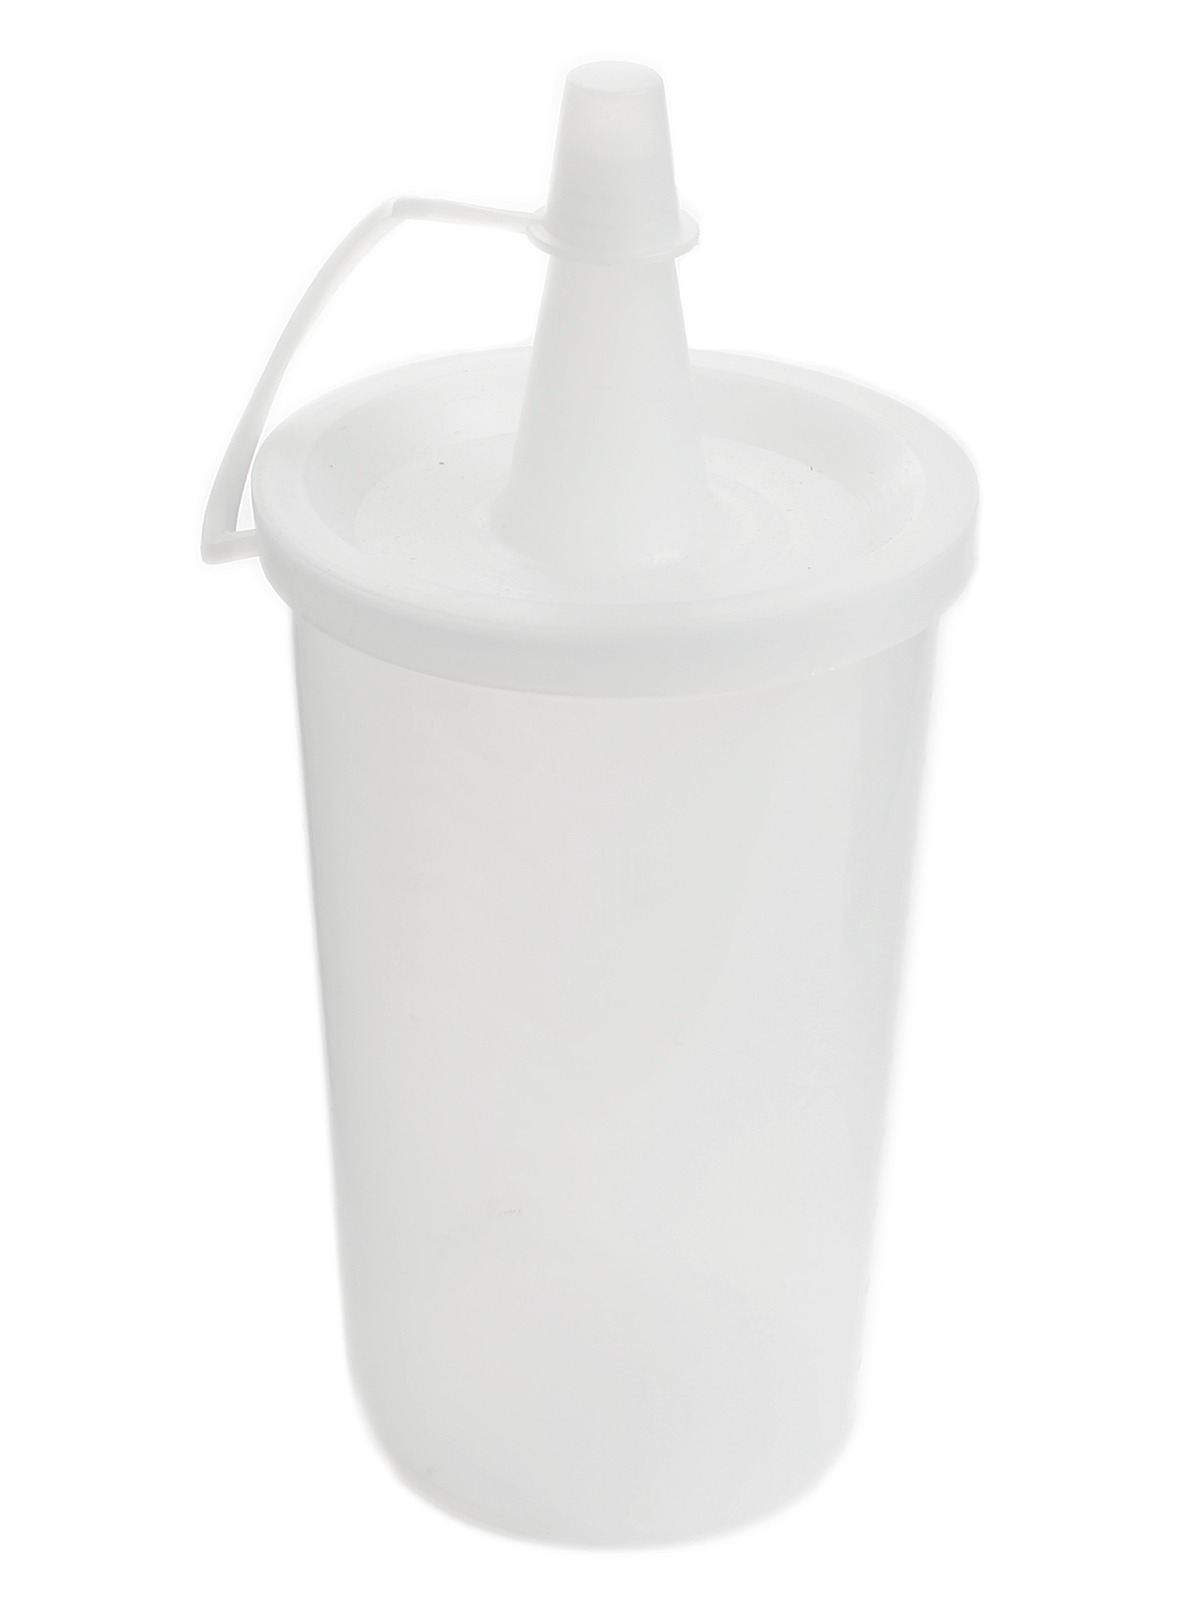 Paint Dispenser Cup